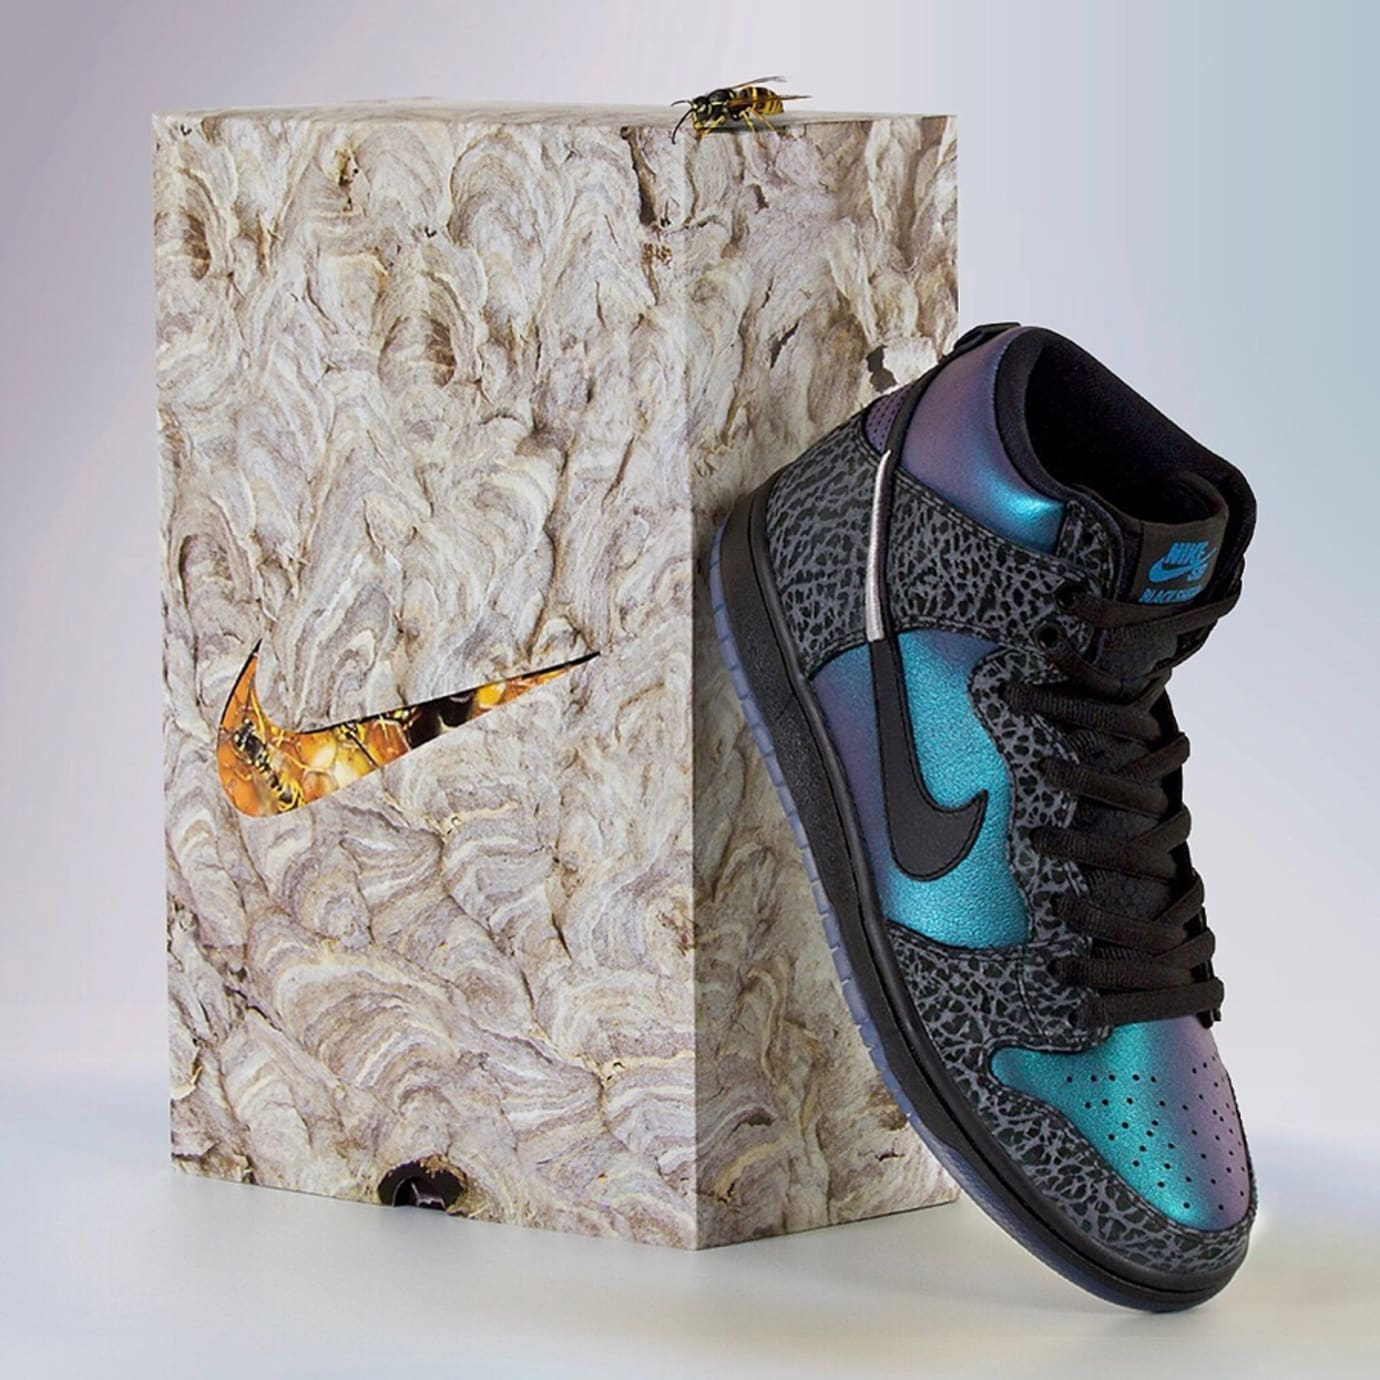 Black Sheep x Nike SB Dunk High 'Black Hornet' (Box 2)